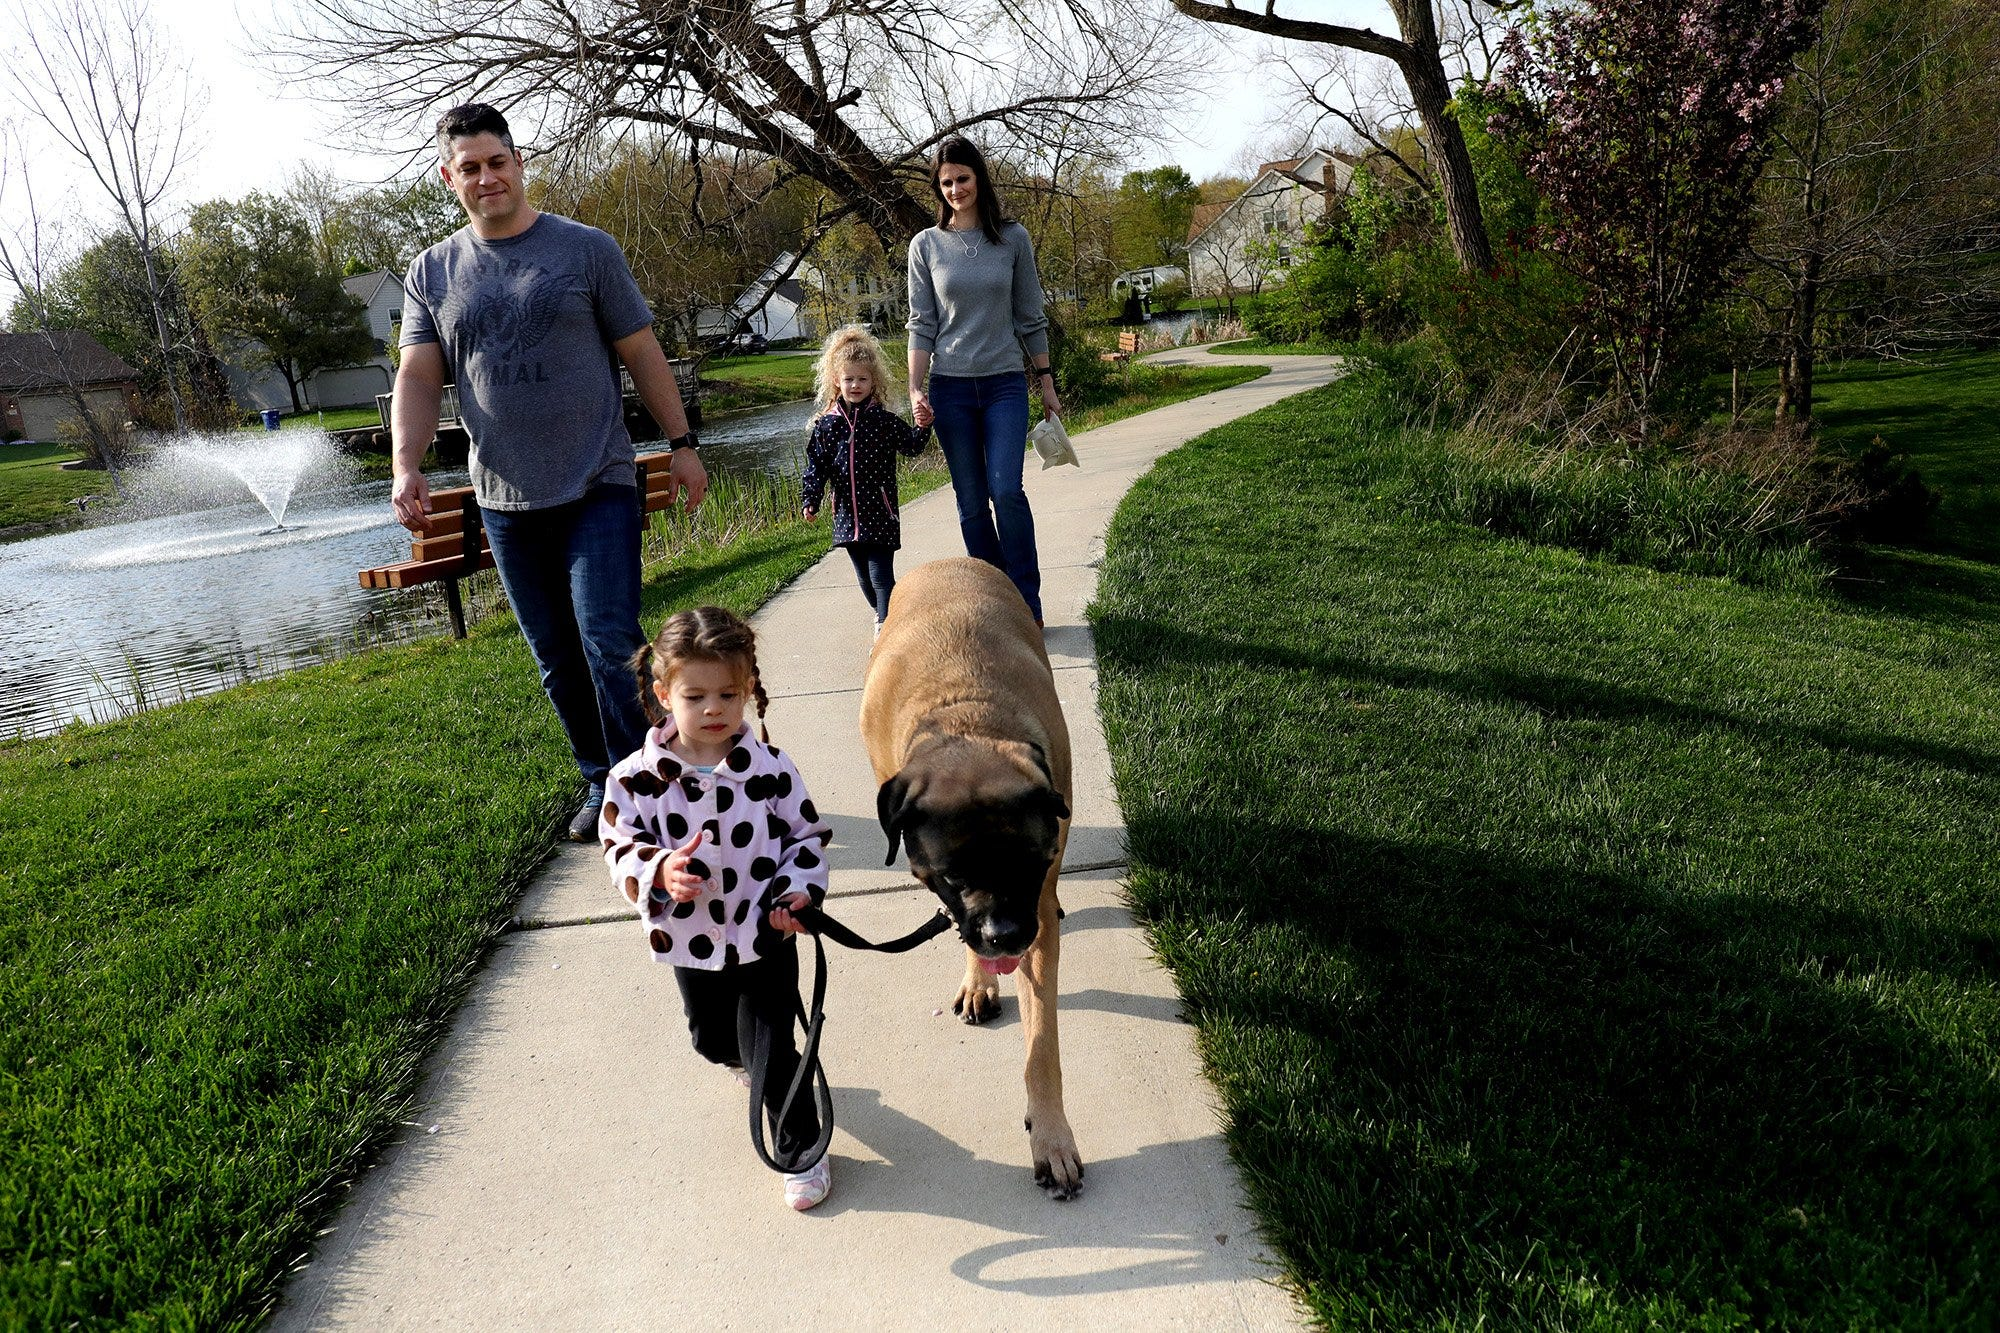 Leila, 2, leads the way with Bane, as the Korn family heads home during a walk in their Gahanna neighborhood before dinner.